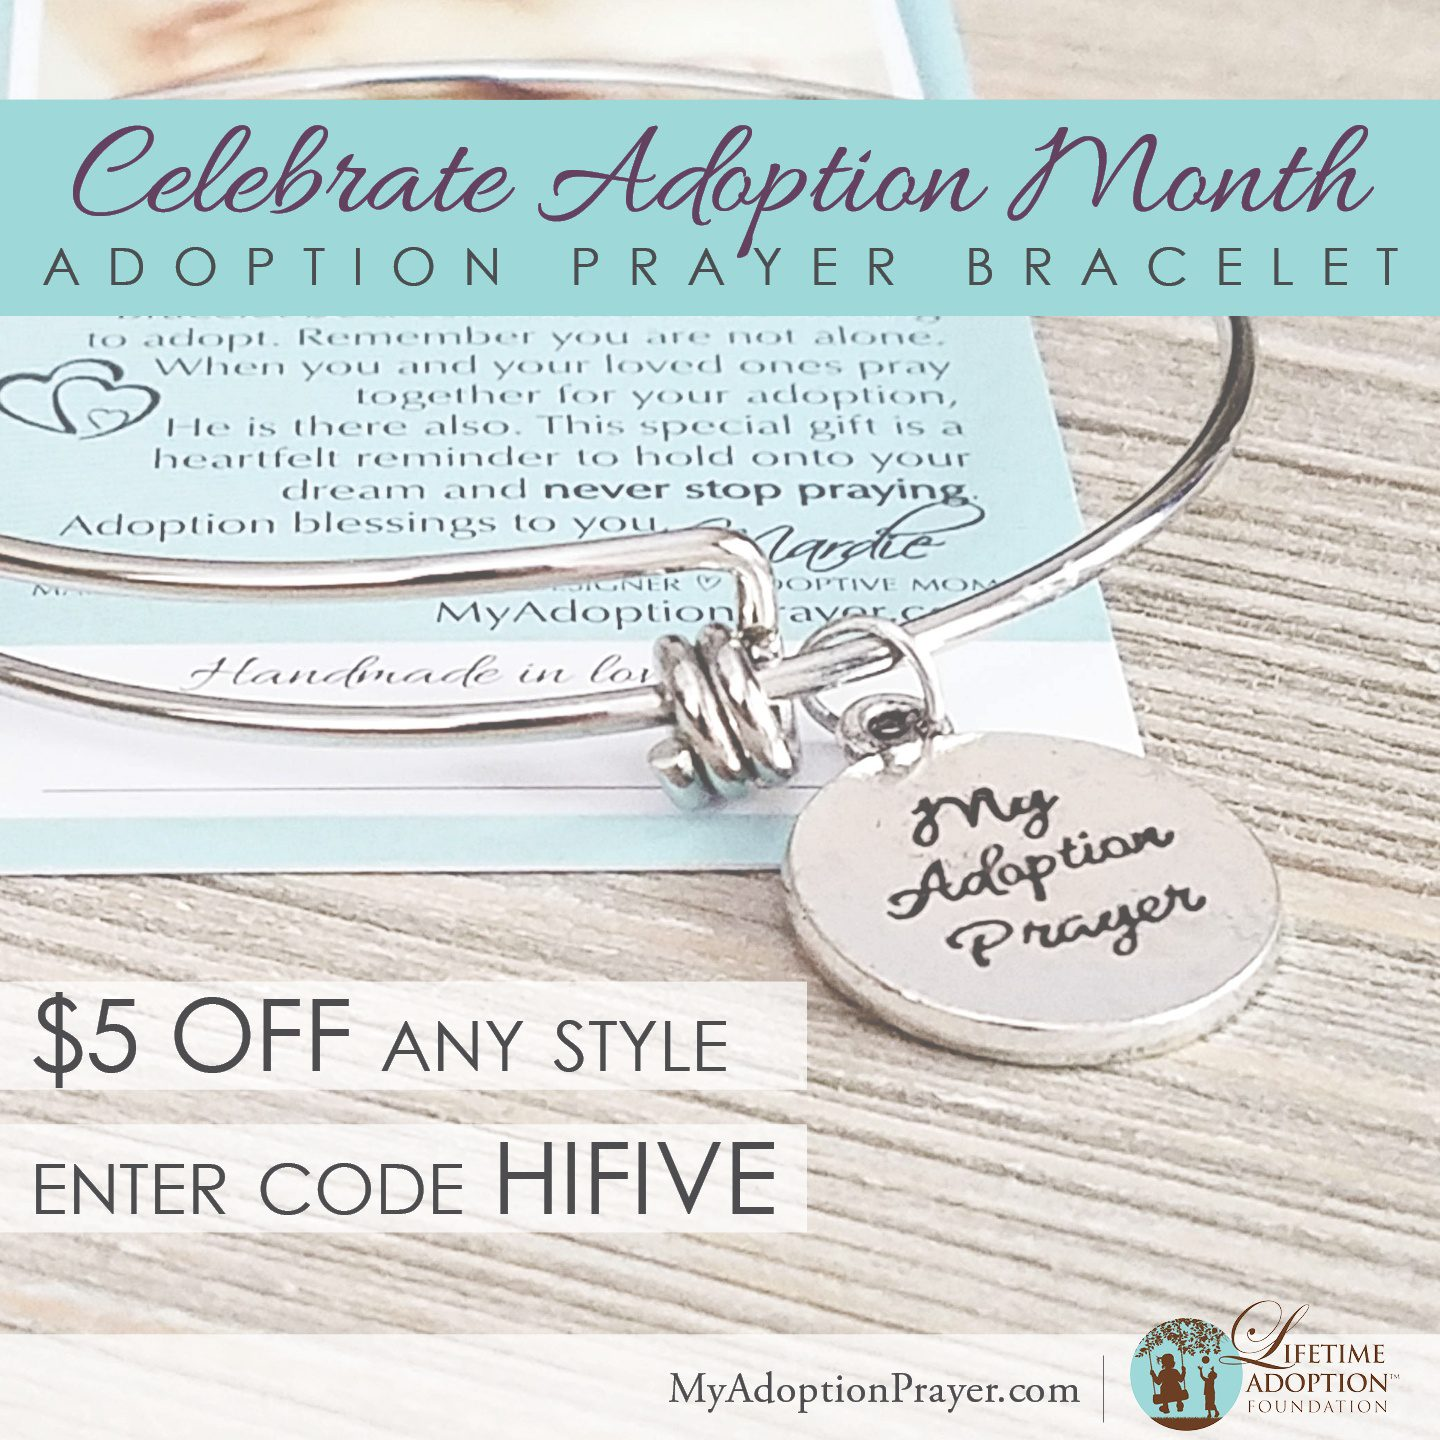 Get $5 off your purchase of an Adoption Prayer Bracelet!